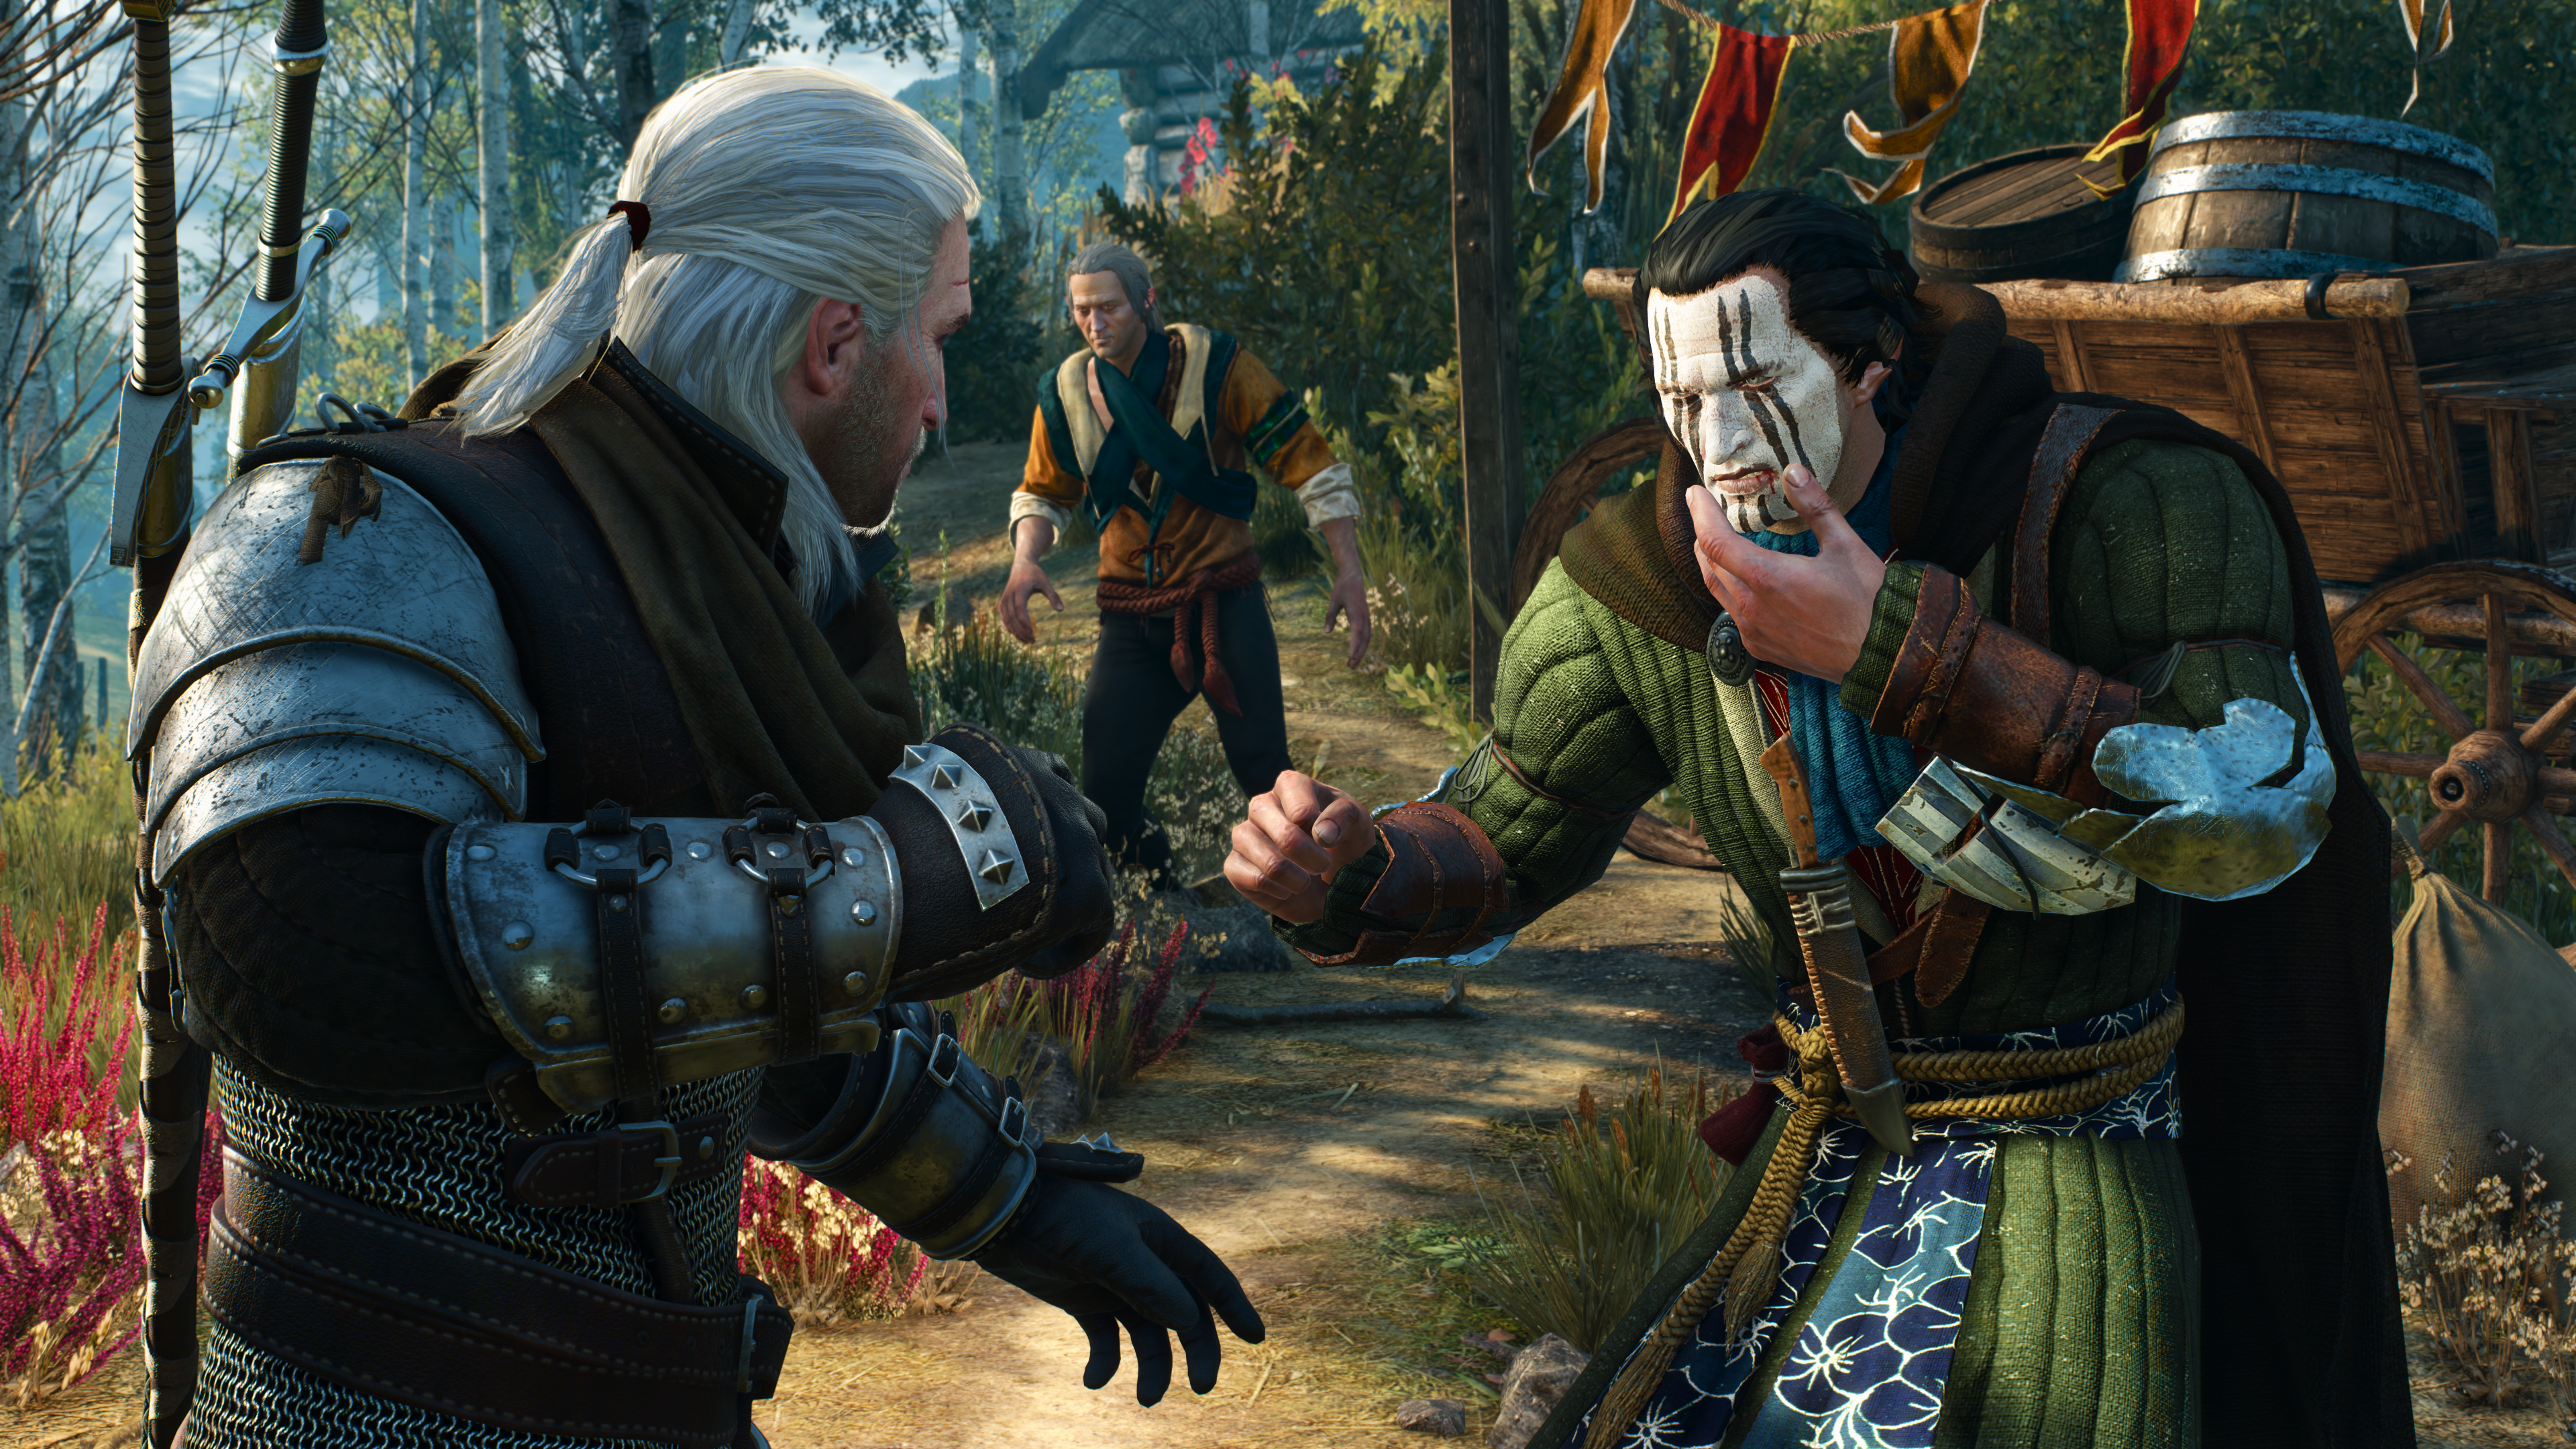 Player verb relationships in The Witcher 3: The Wild Hunt